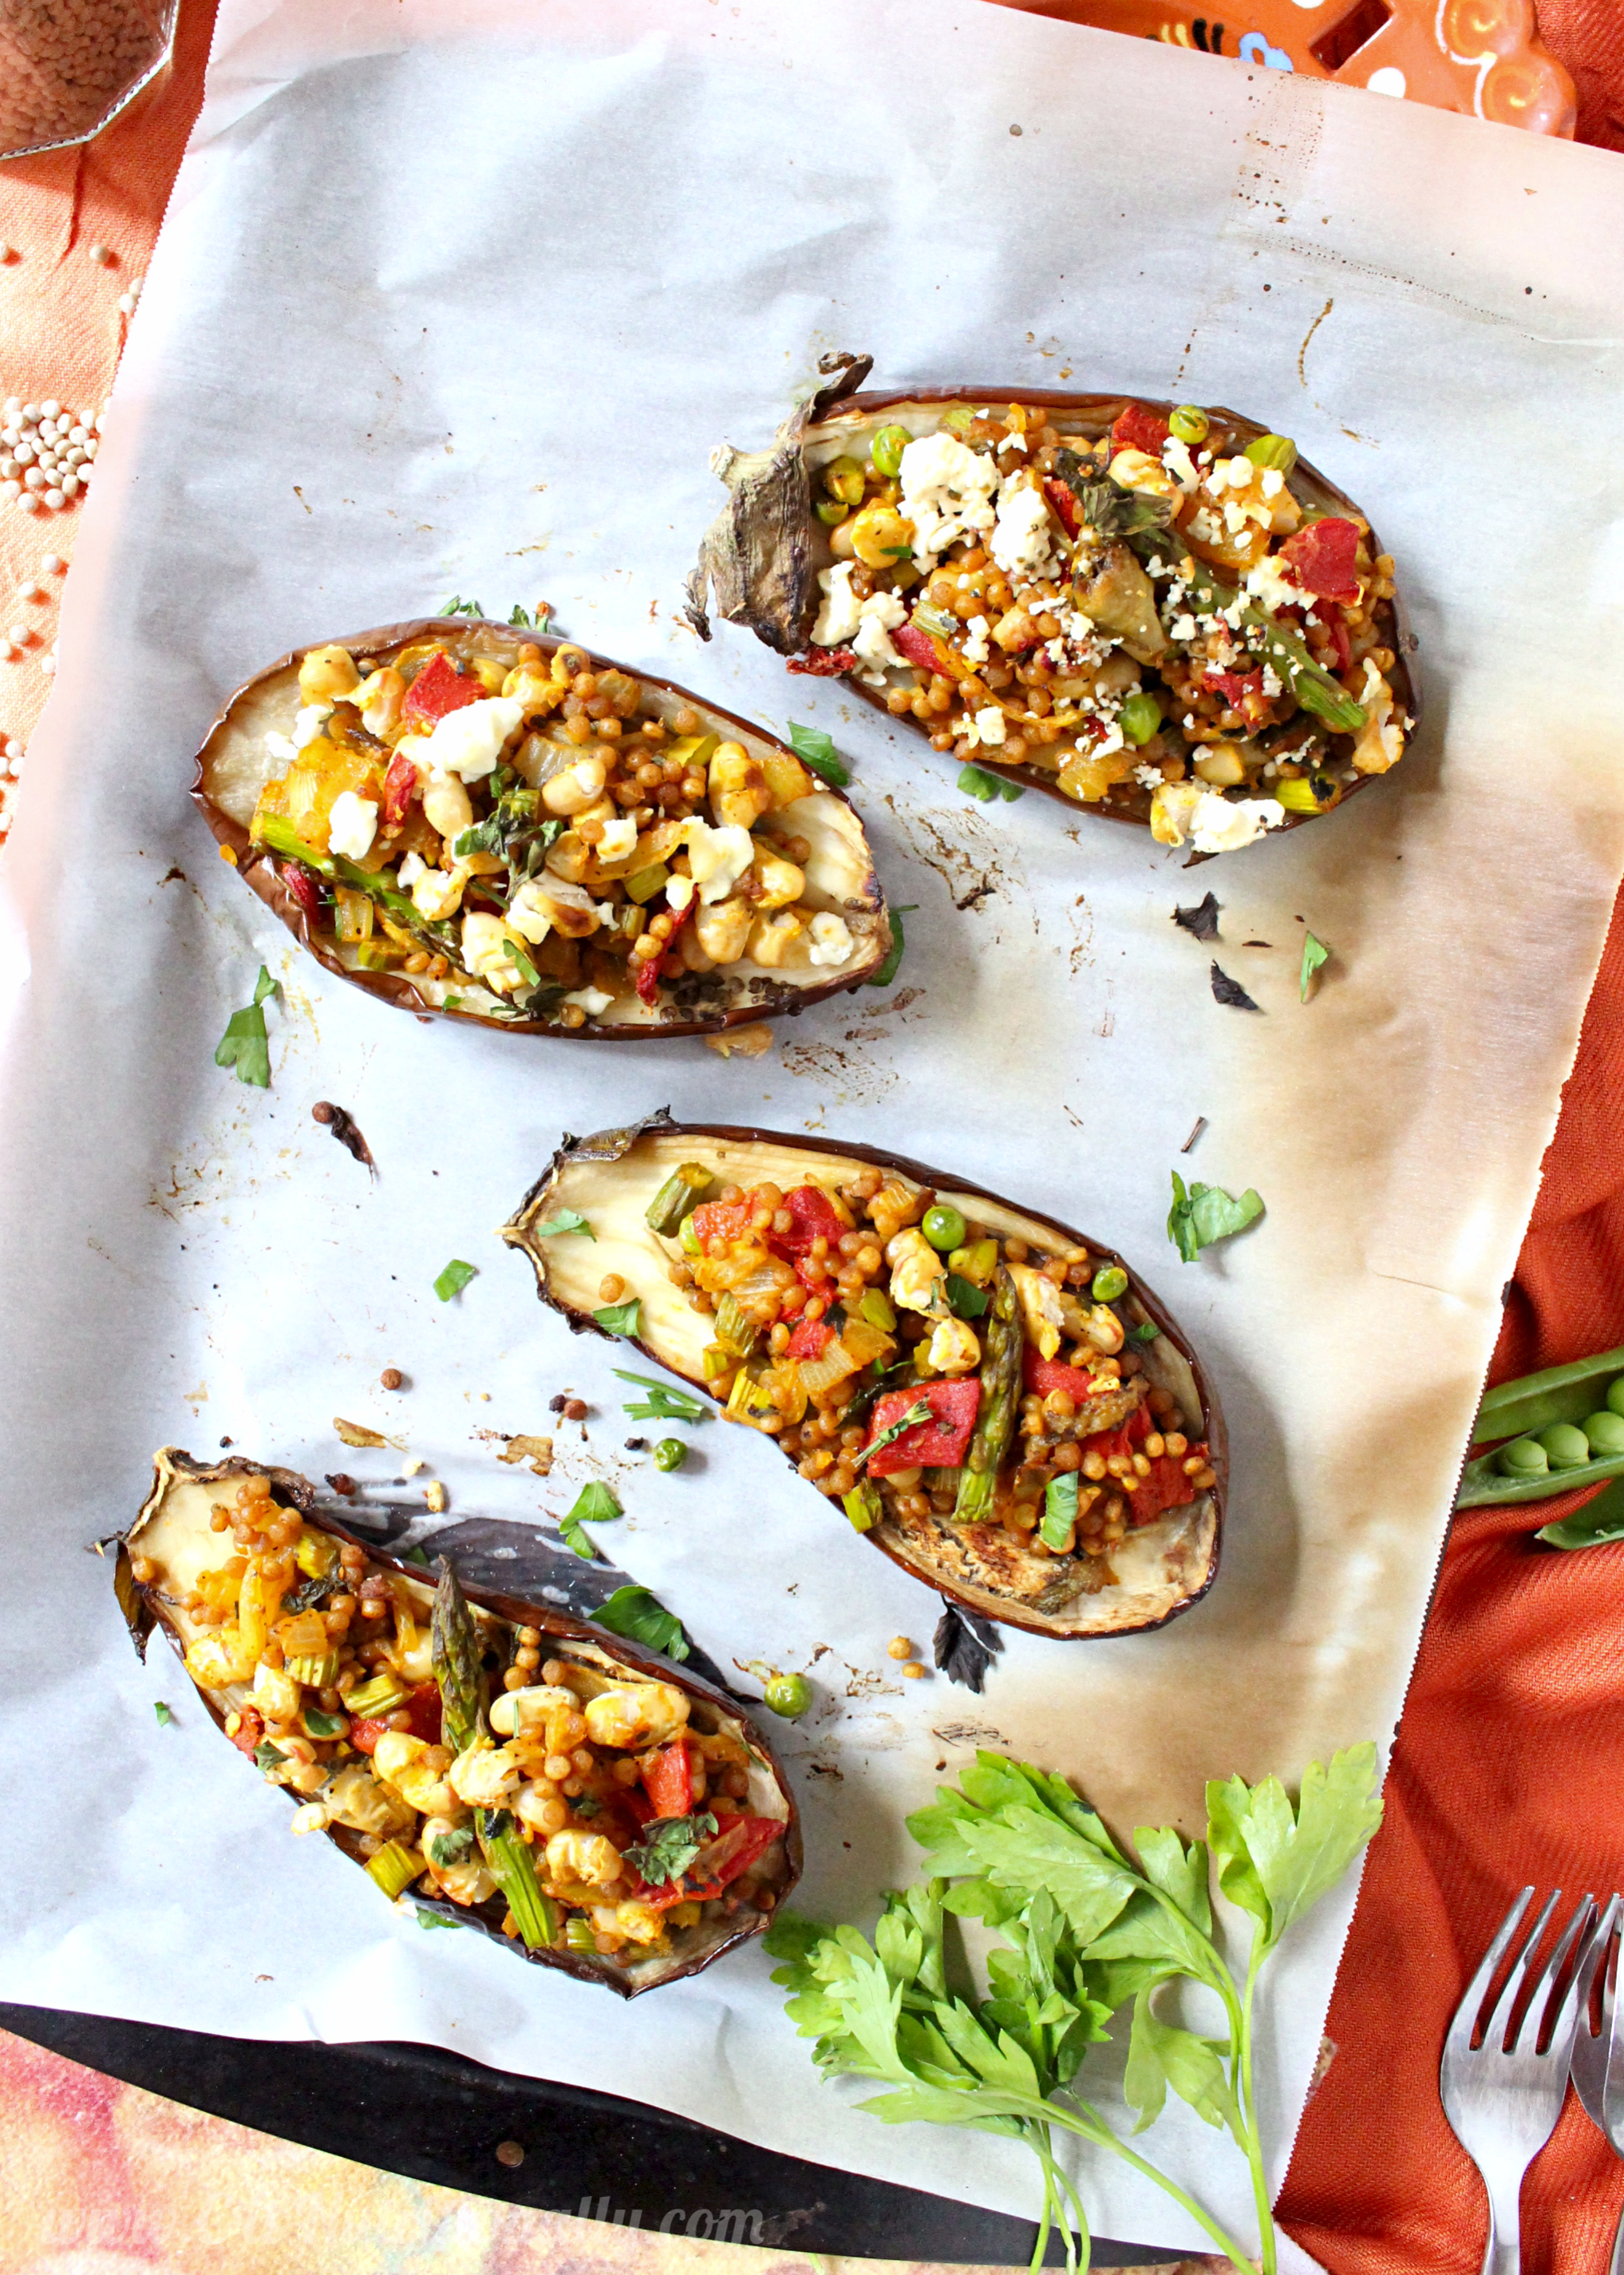 Israeli Cous Cous Stuffed Eggplant | C it Nutritionally..